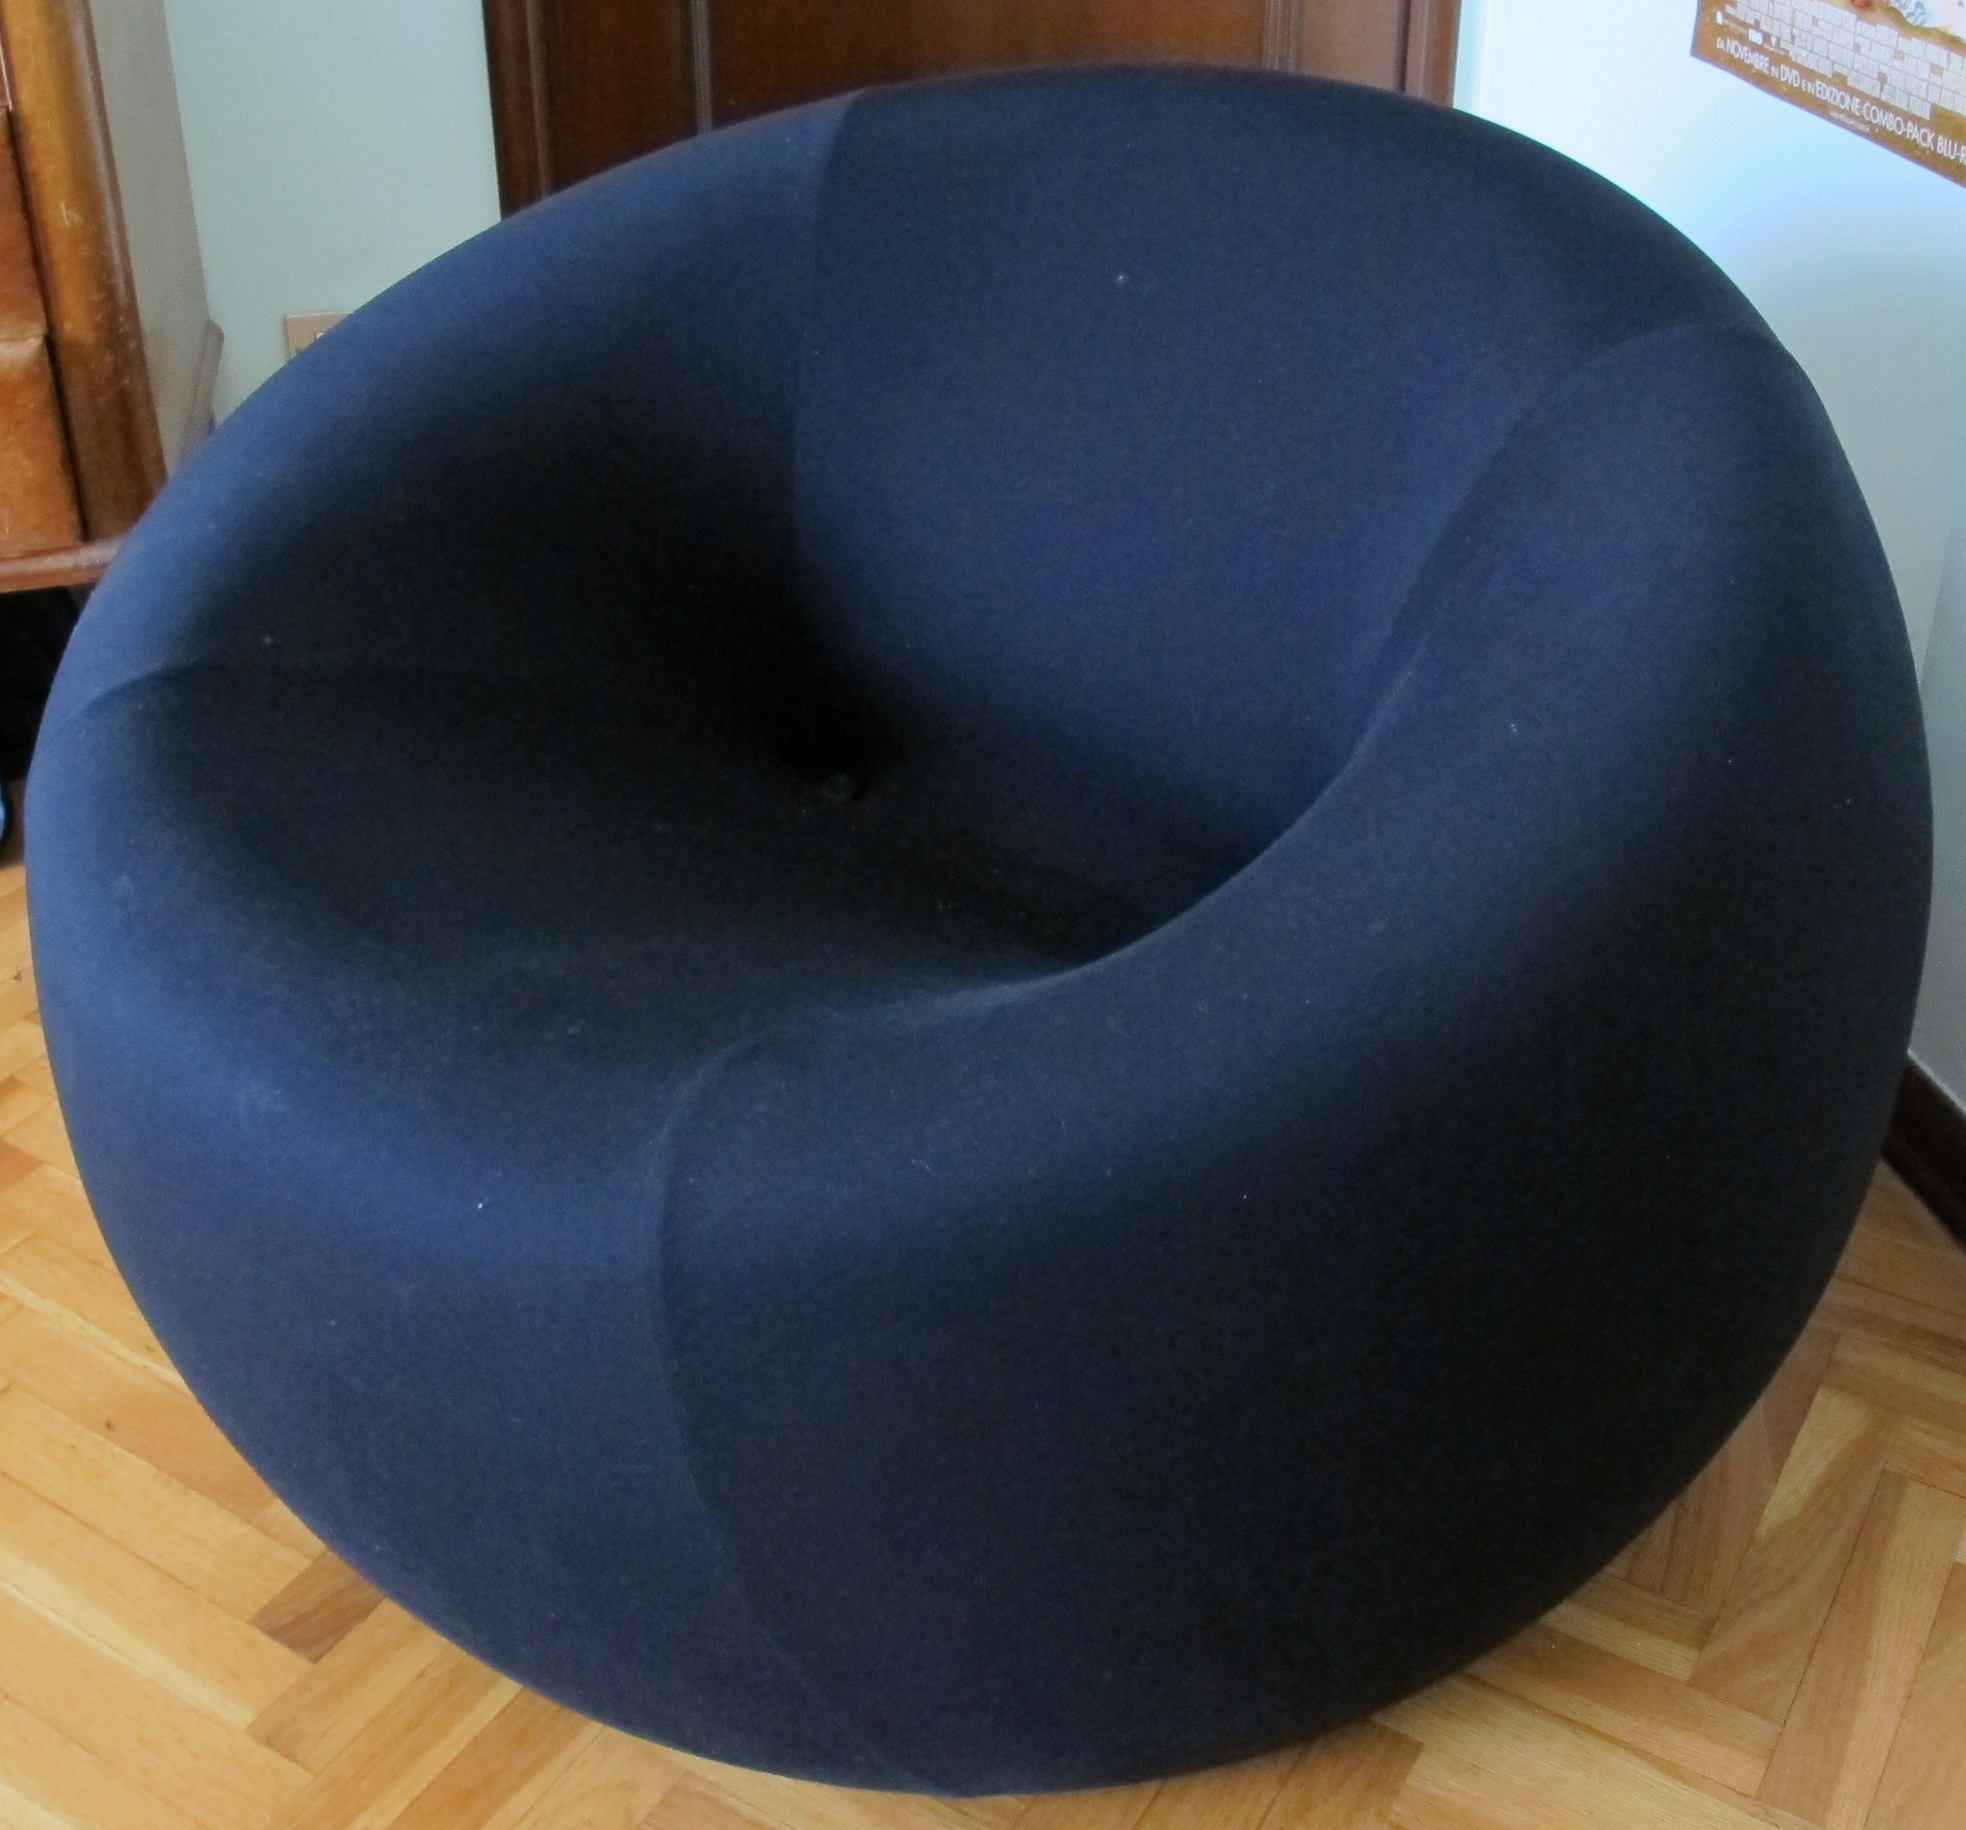 Armchair Made Of Polyurethane Foam Upholstered In Fabric